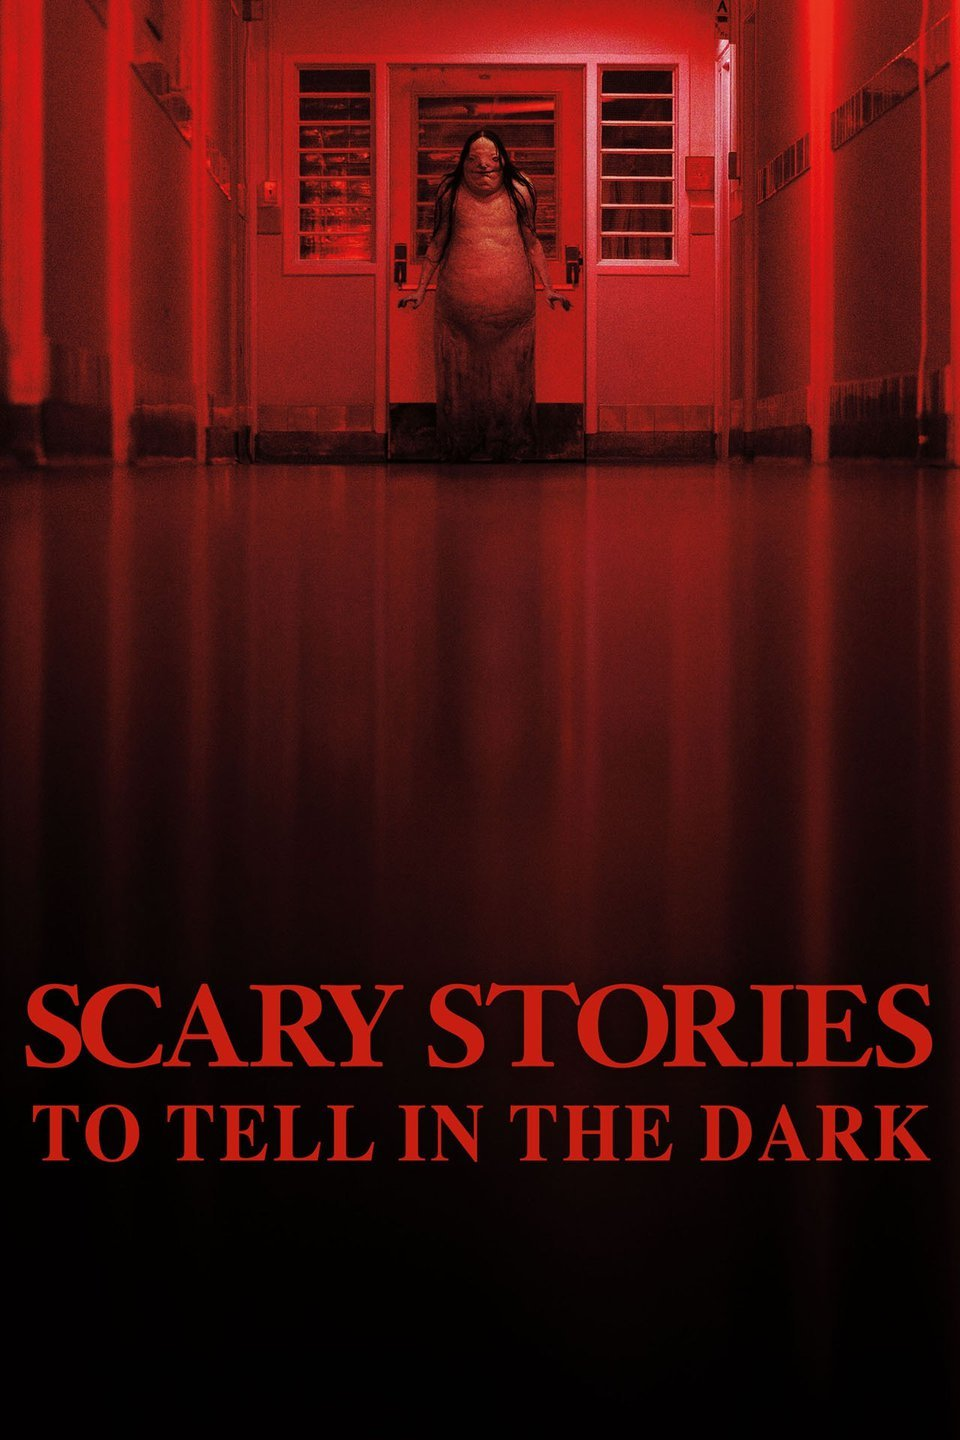 Antelope Valley Mall ::: Scary Stories to Tell in the Dark